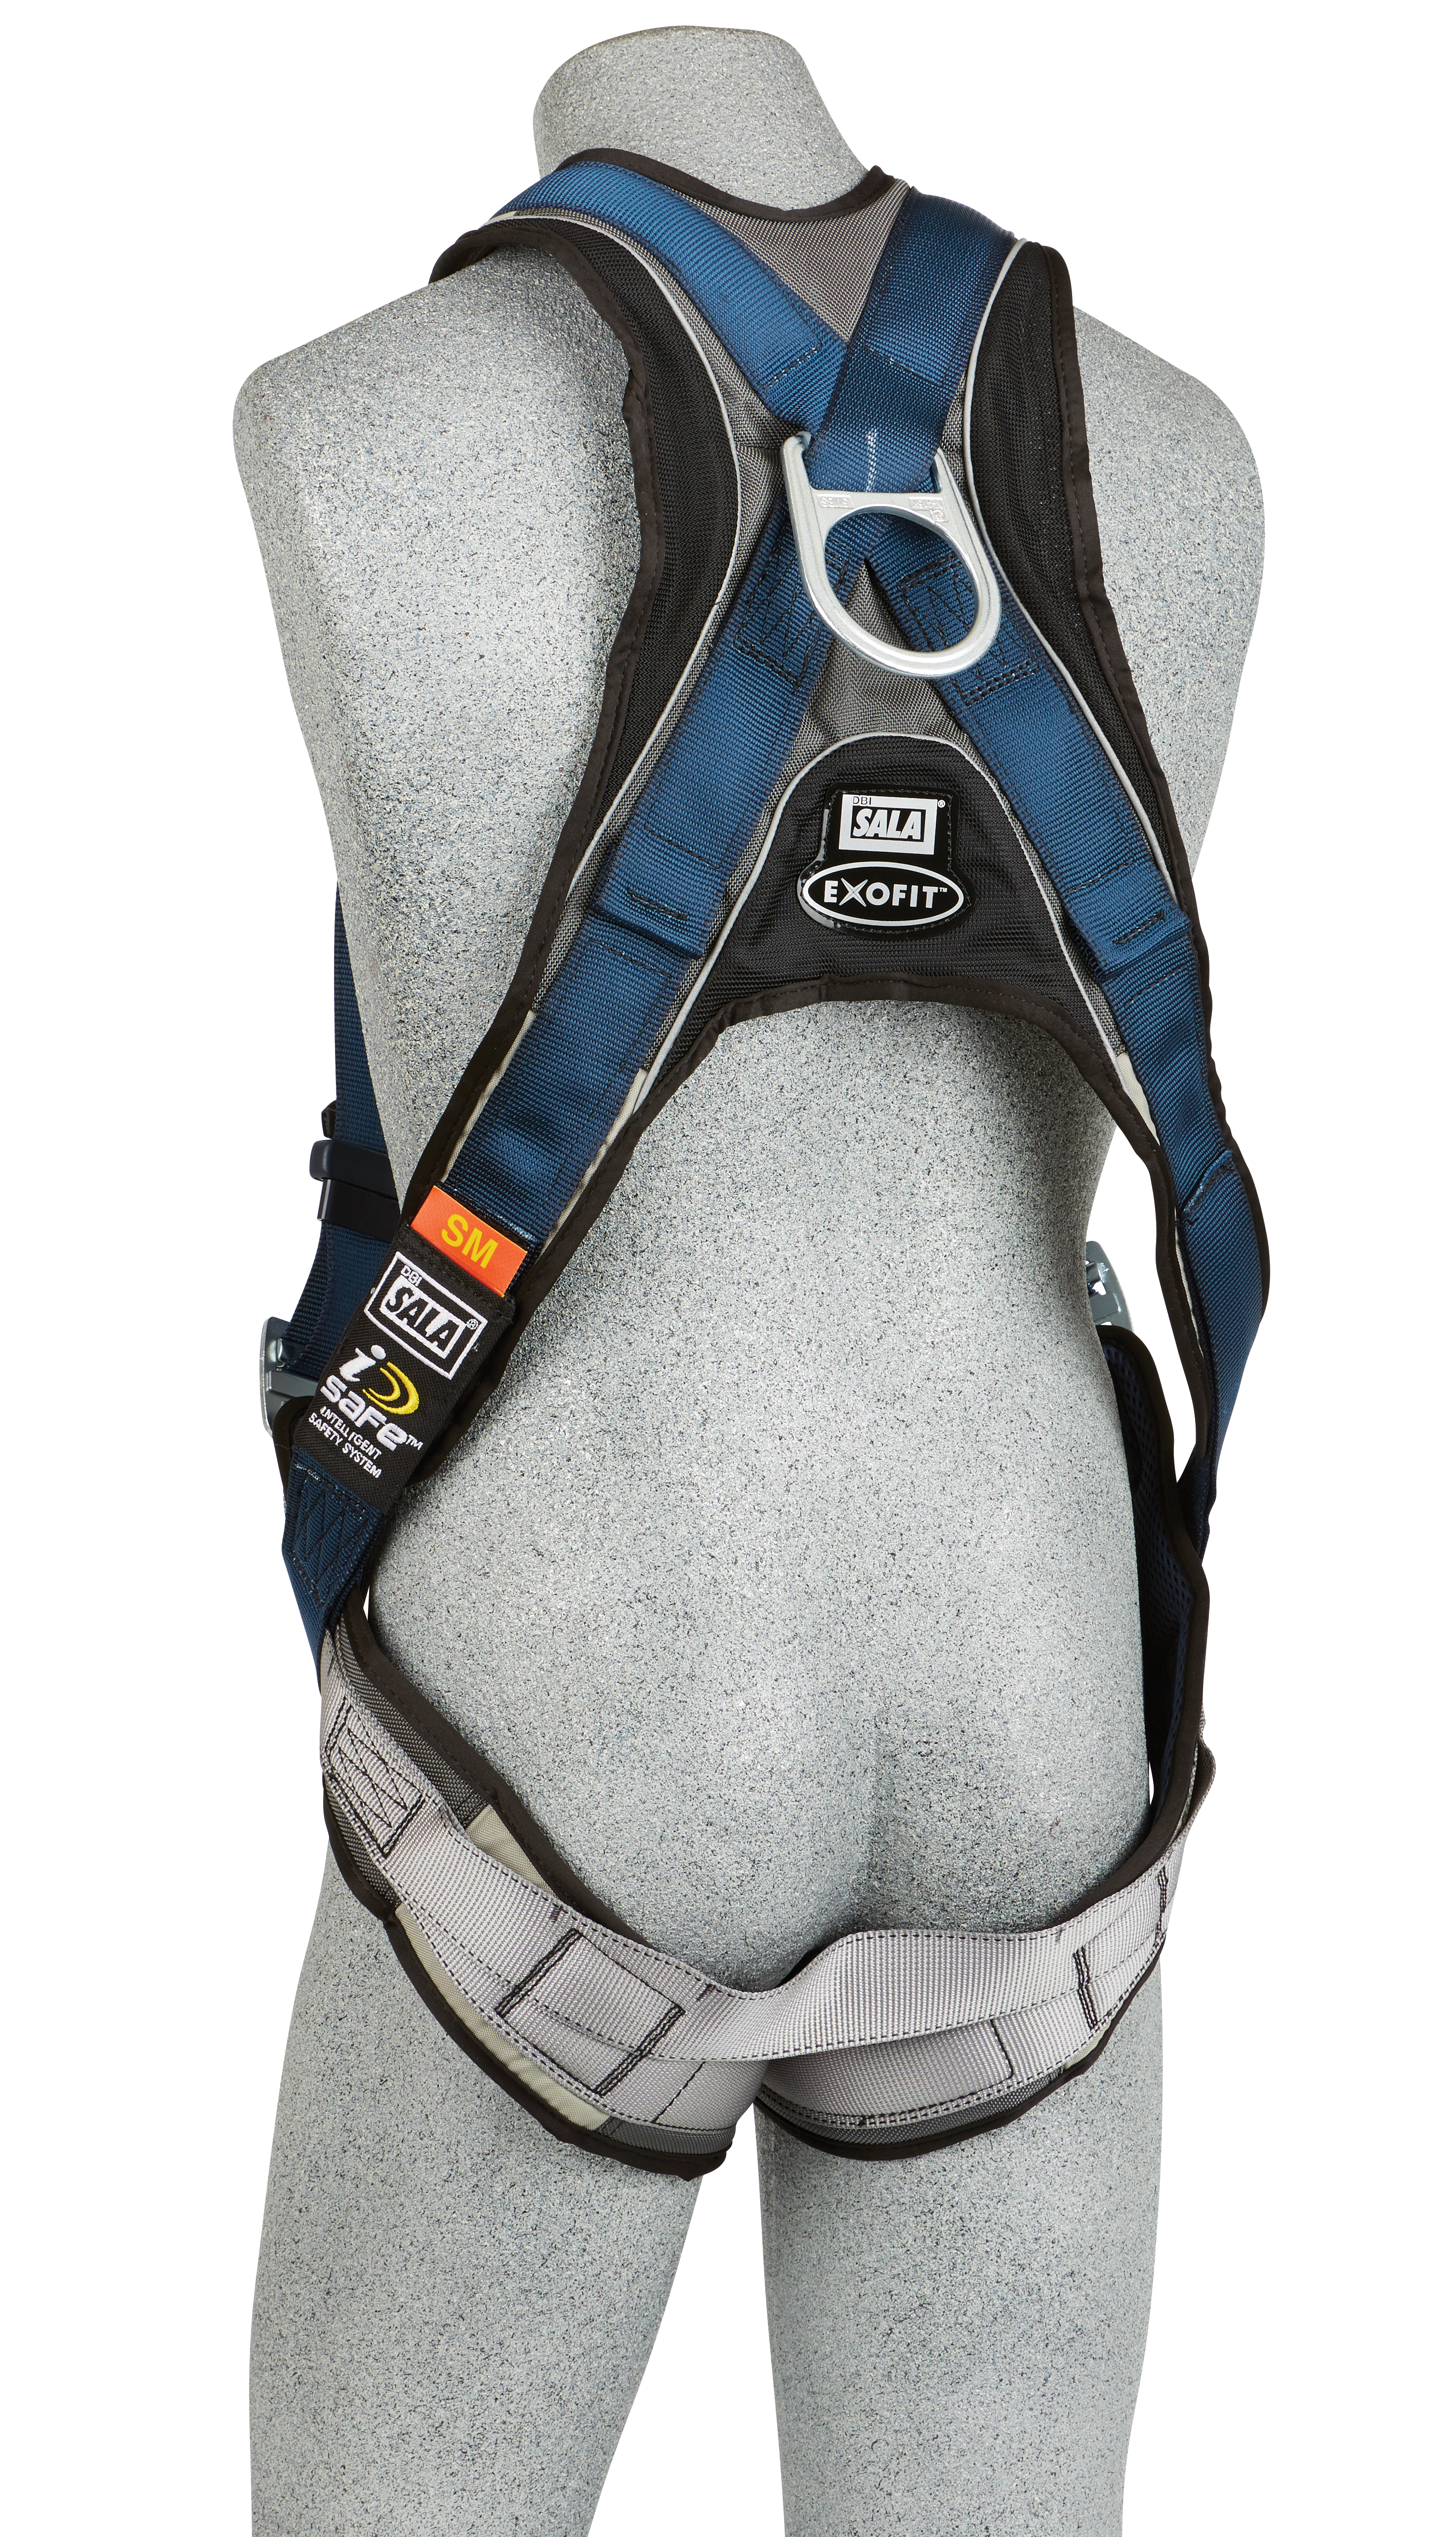 ExoFit Vest-Style Harness, Quick-Connect Chest and Legs, Back